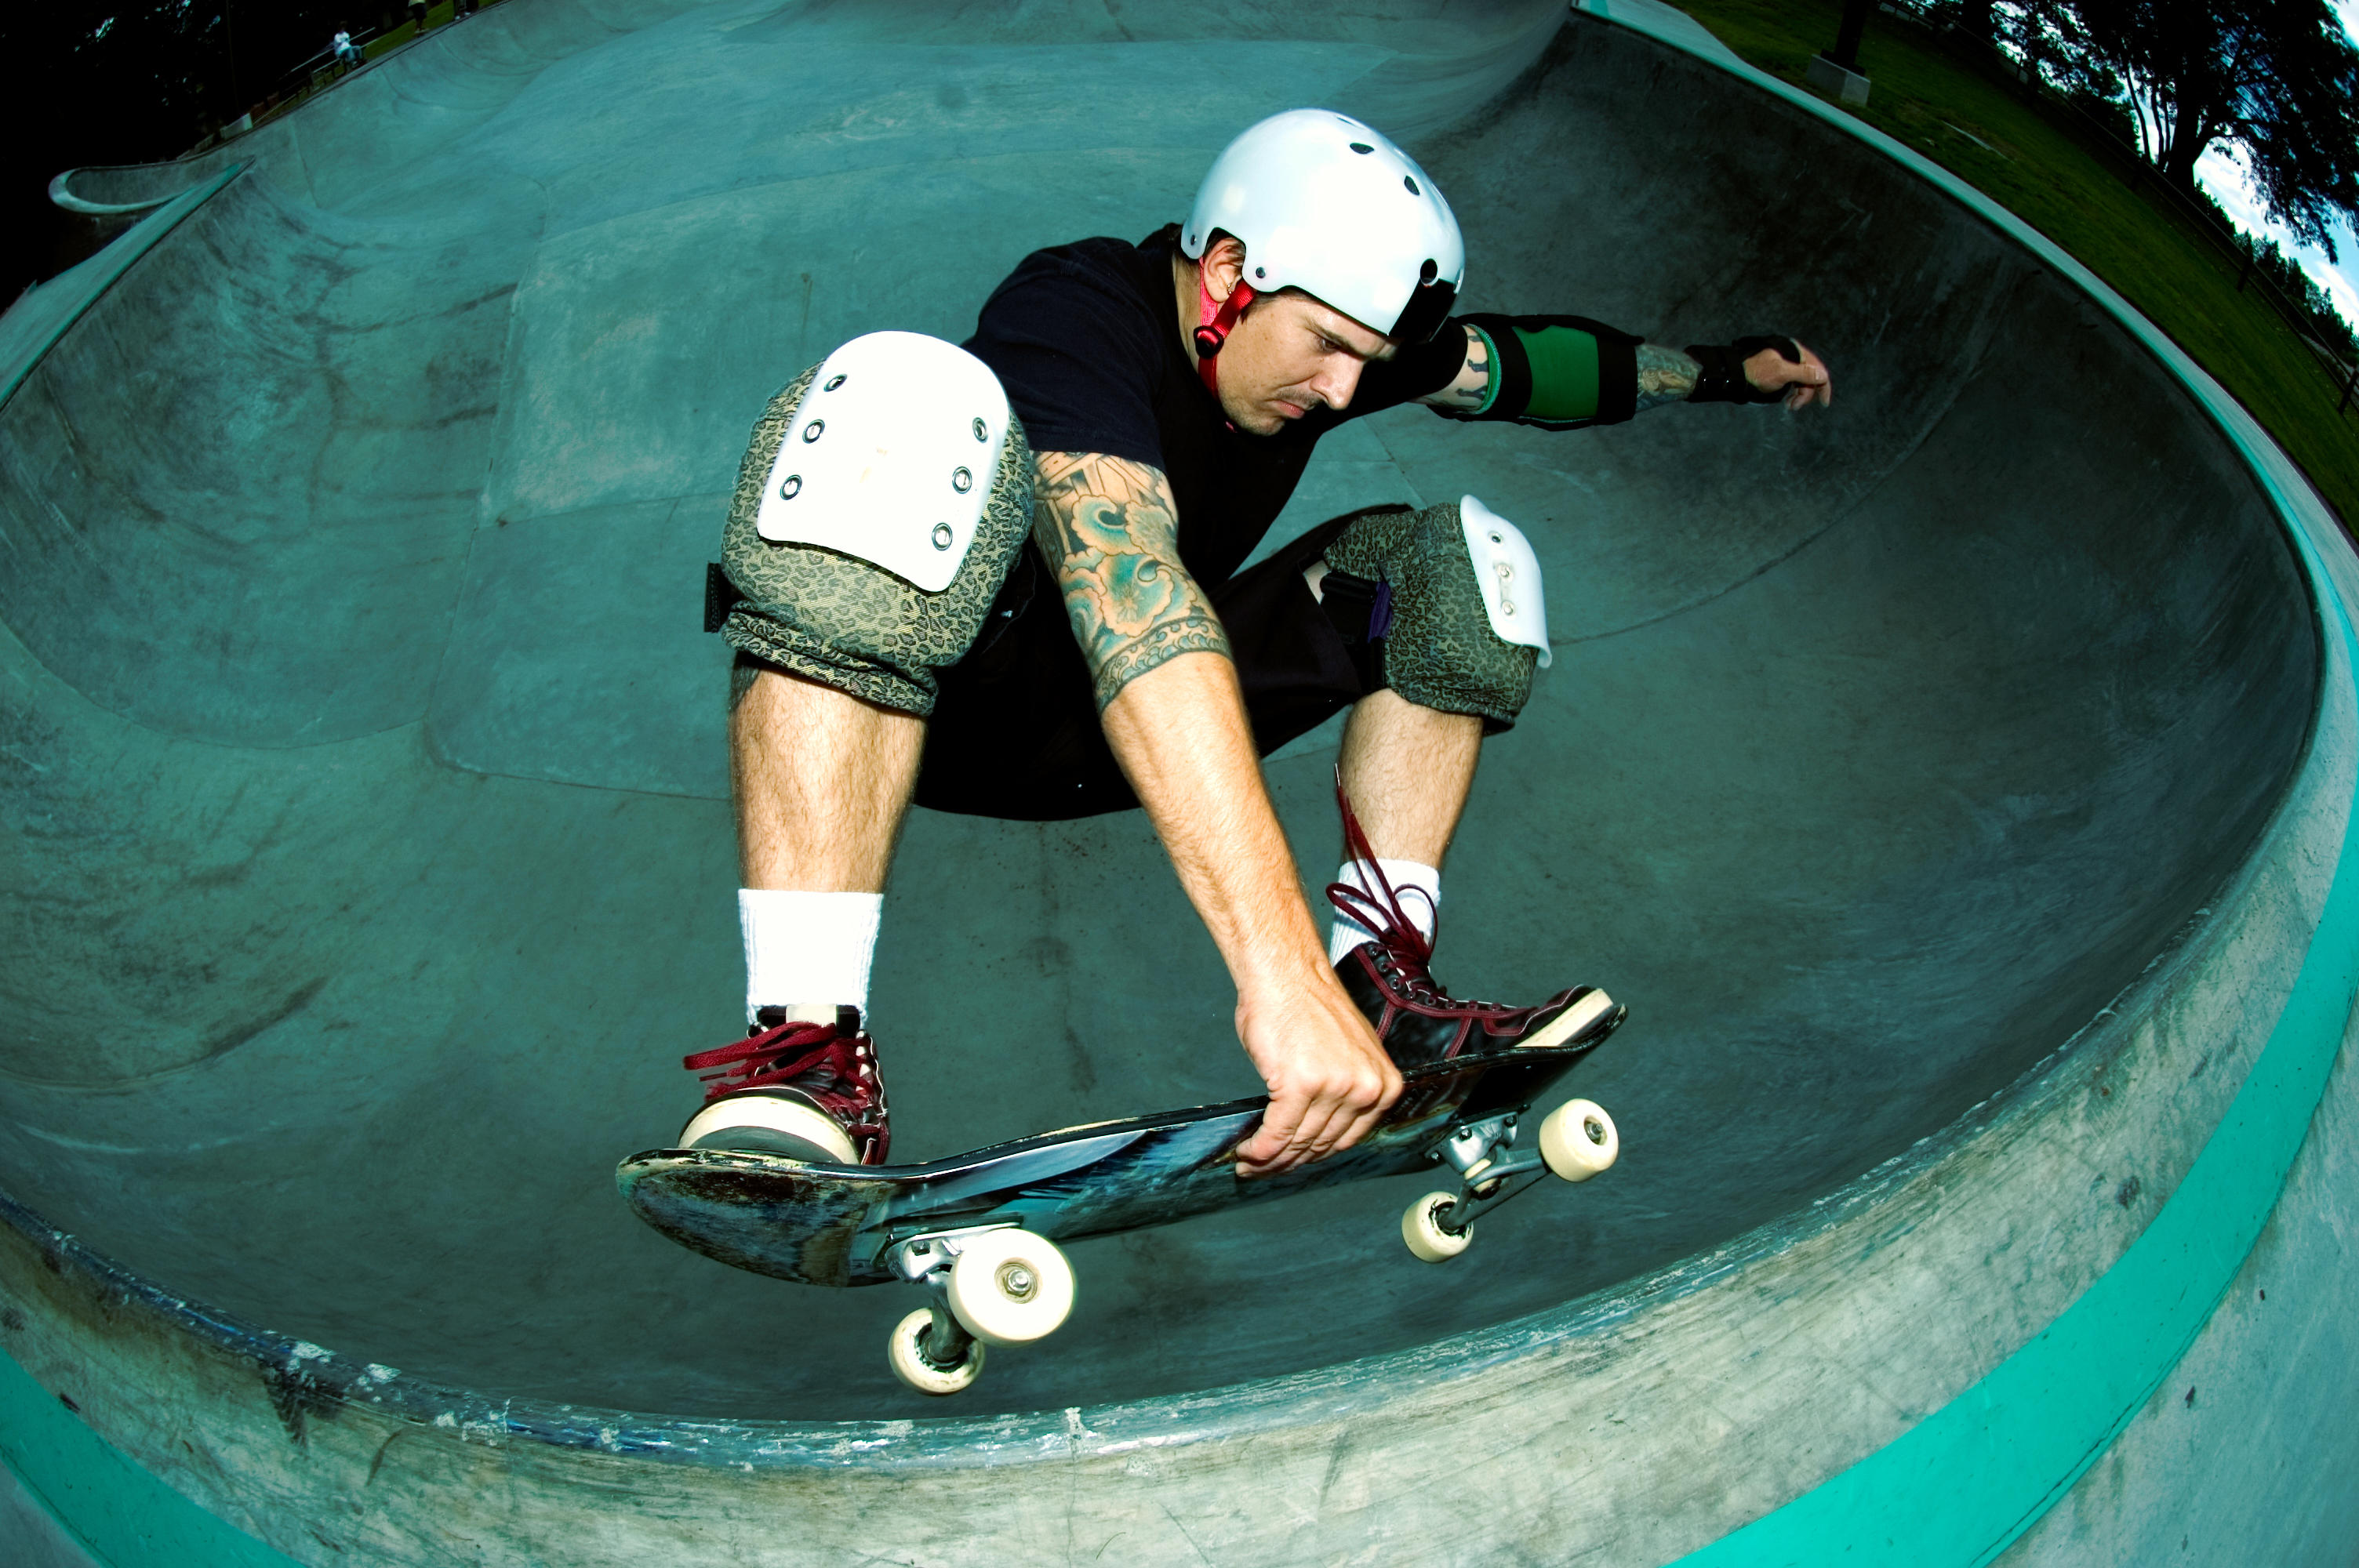 Male skateboarder performing a frontside air at a skateboard park. Cross-processed fish-eye image.